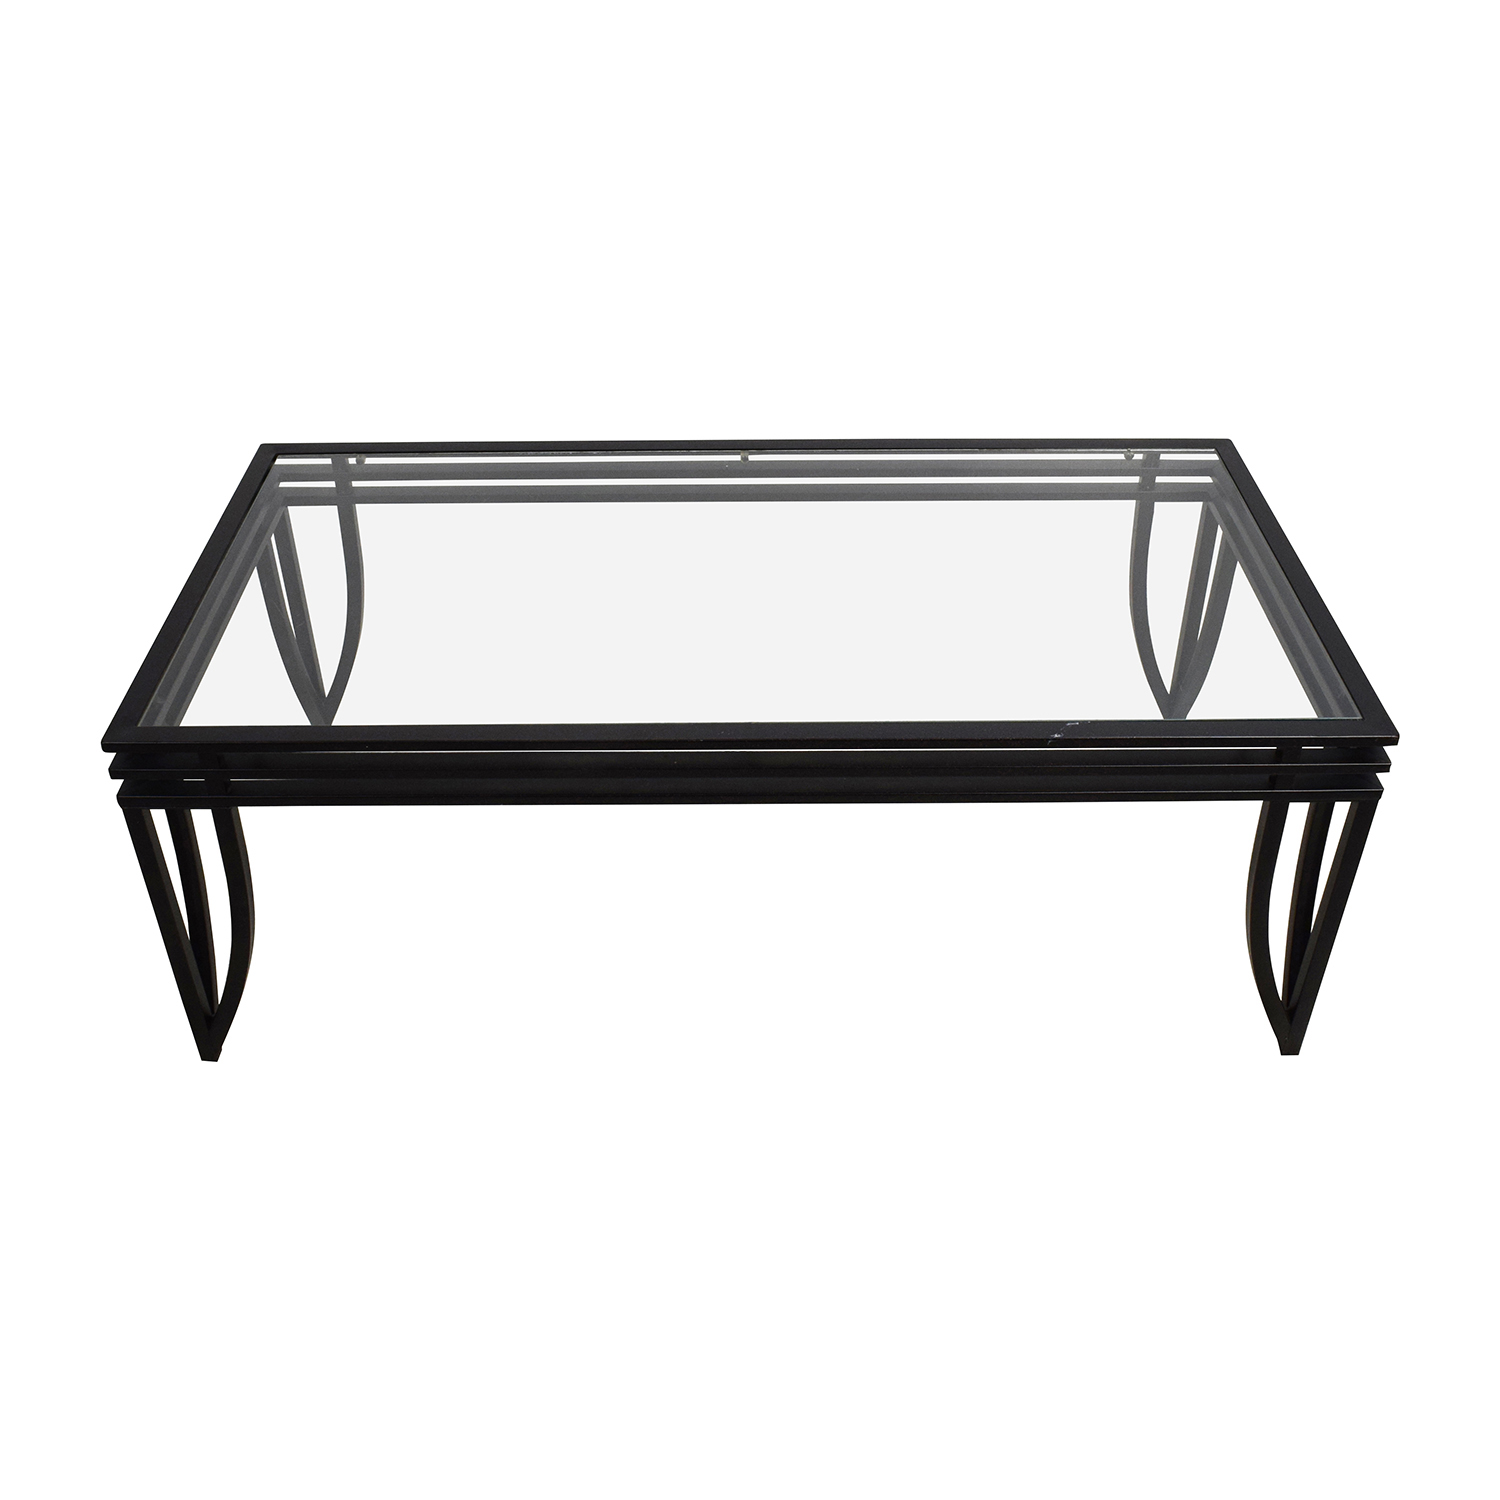 Ashley Furniture Ashley Furniture Rectangular Glass And Black Coffee Table Dimensions